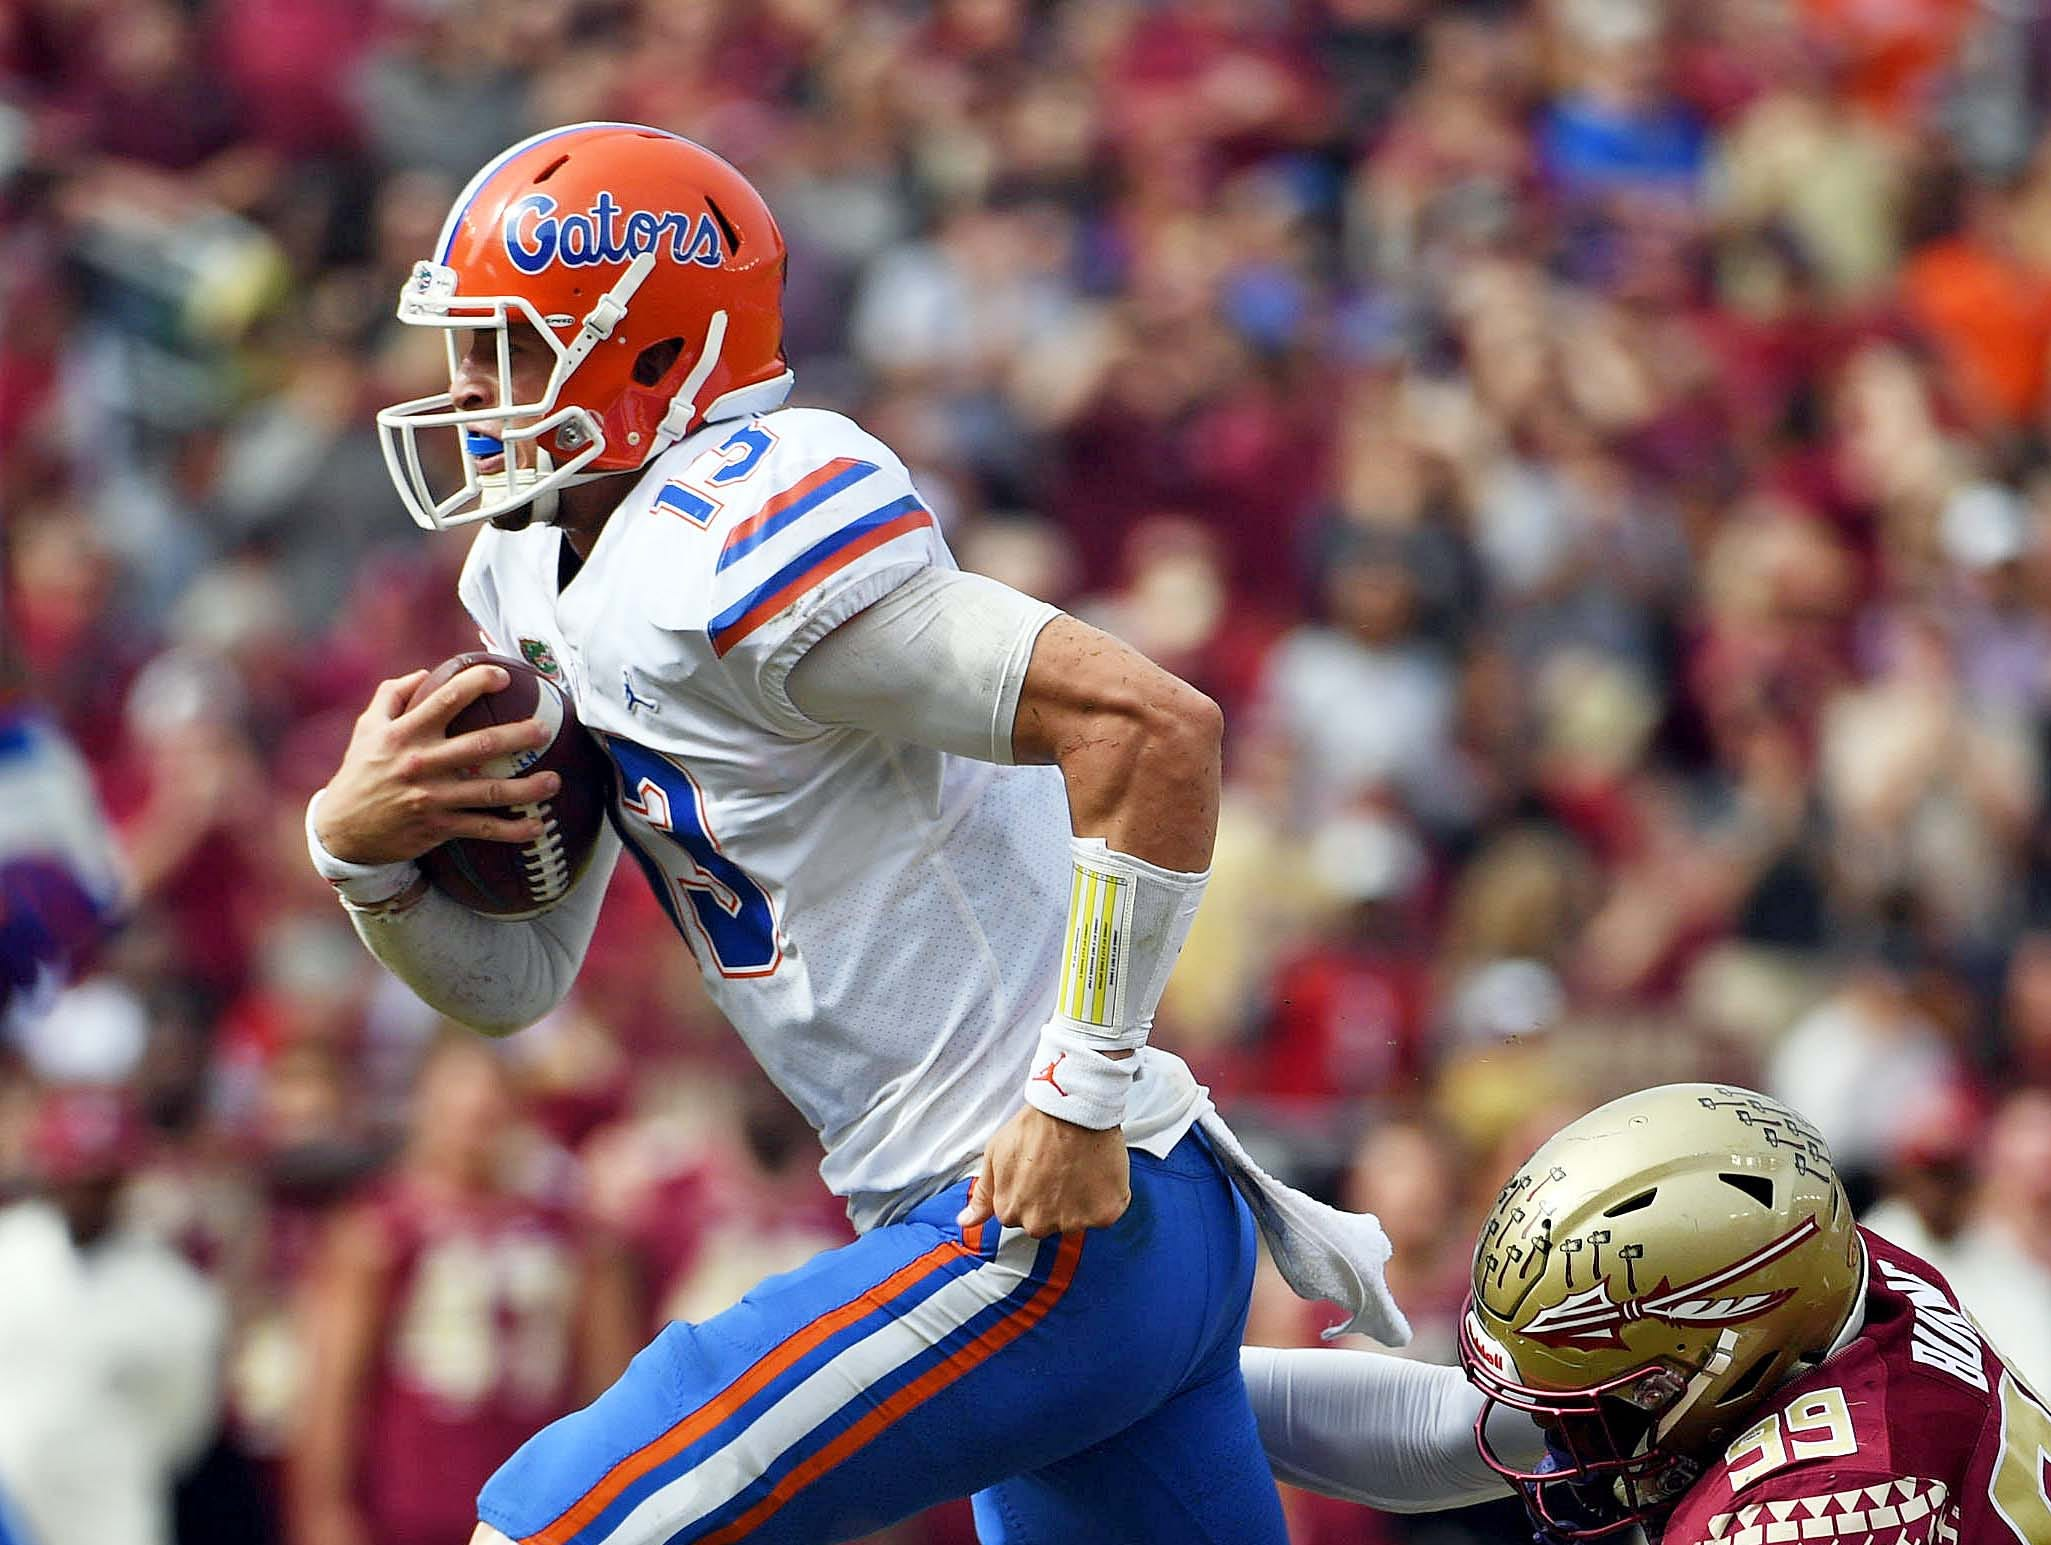 Nov 24, 2018; Tallahassee, FL, USA; Florida Gators quarterback Feleipe Franks (13) runs the ball and is tackled by Florida State Seminoles defensive end Brian Burns (99) during the first half at Doak Campbell Stadium. Mandatory Credit: Melina Myers-USA TODAY Sports